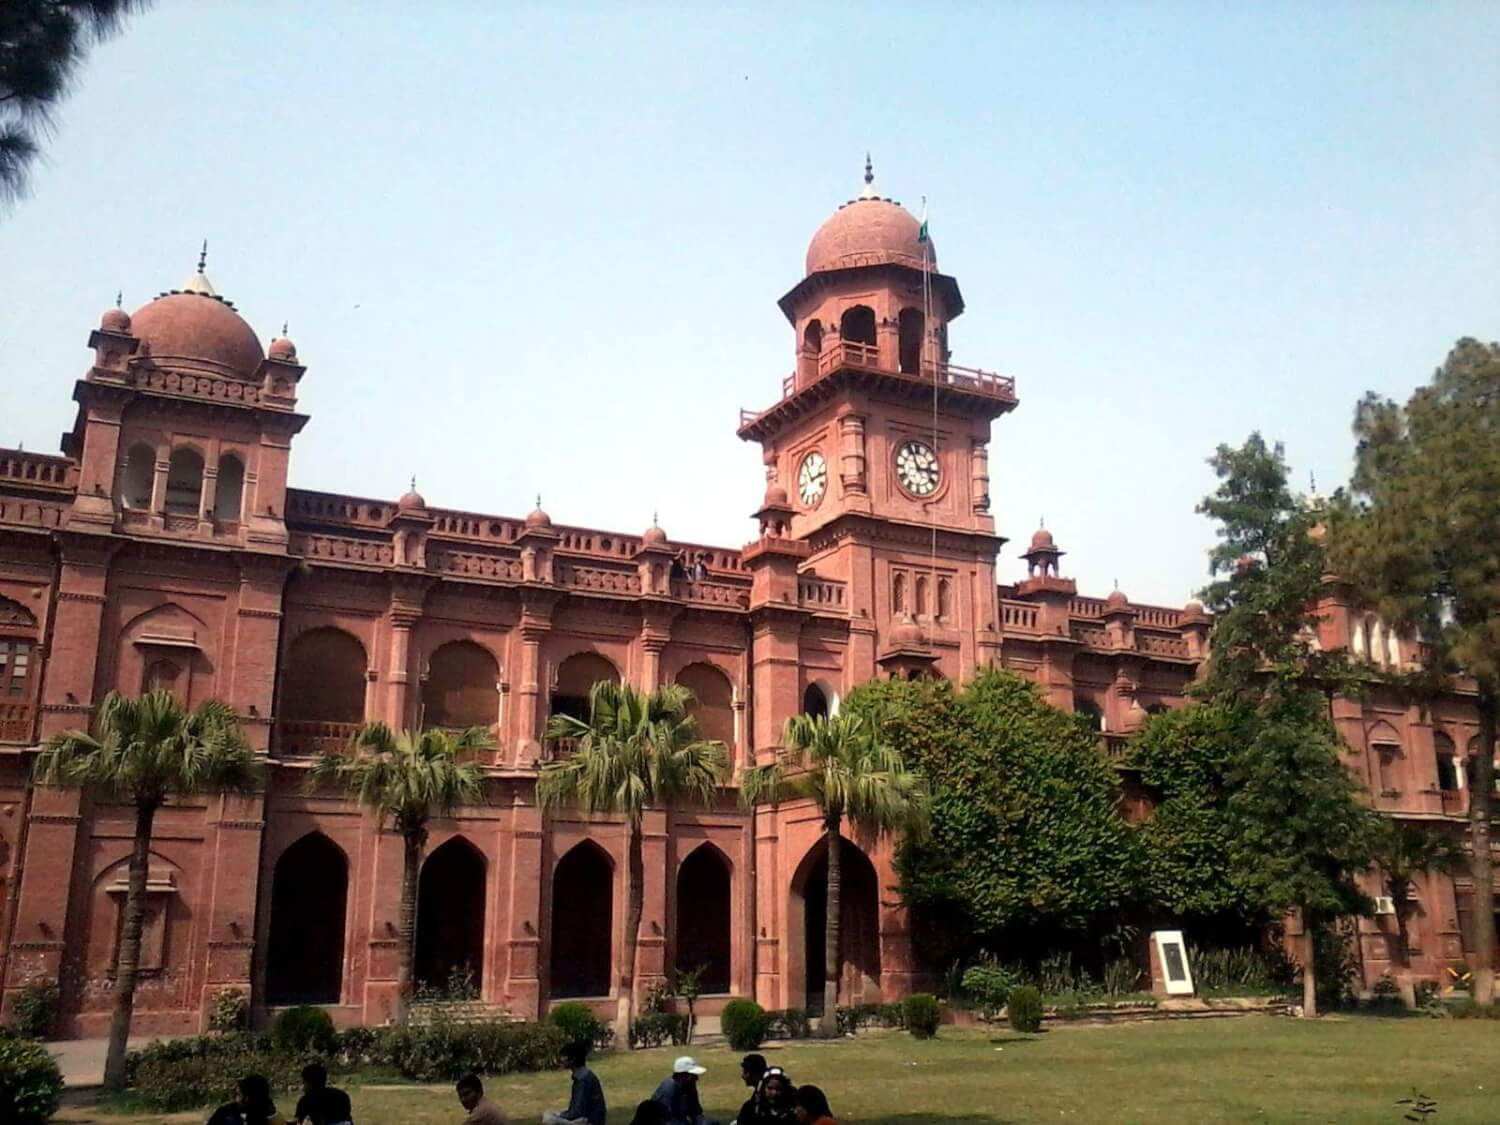 University of the Punjab